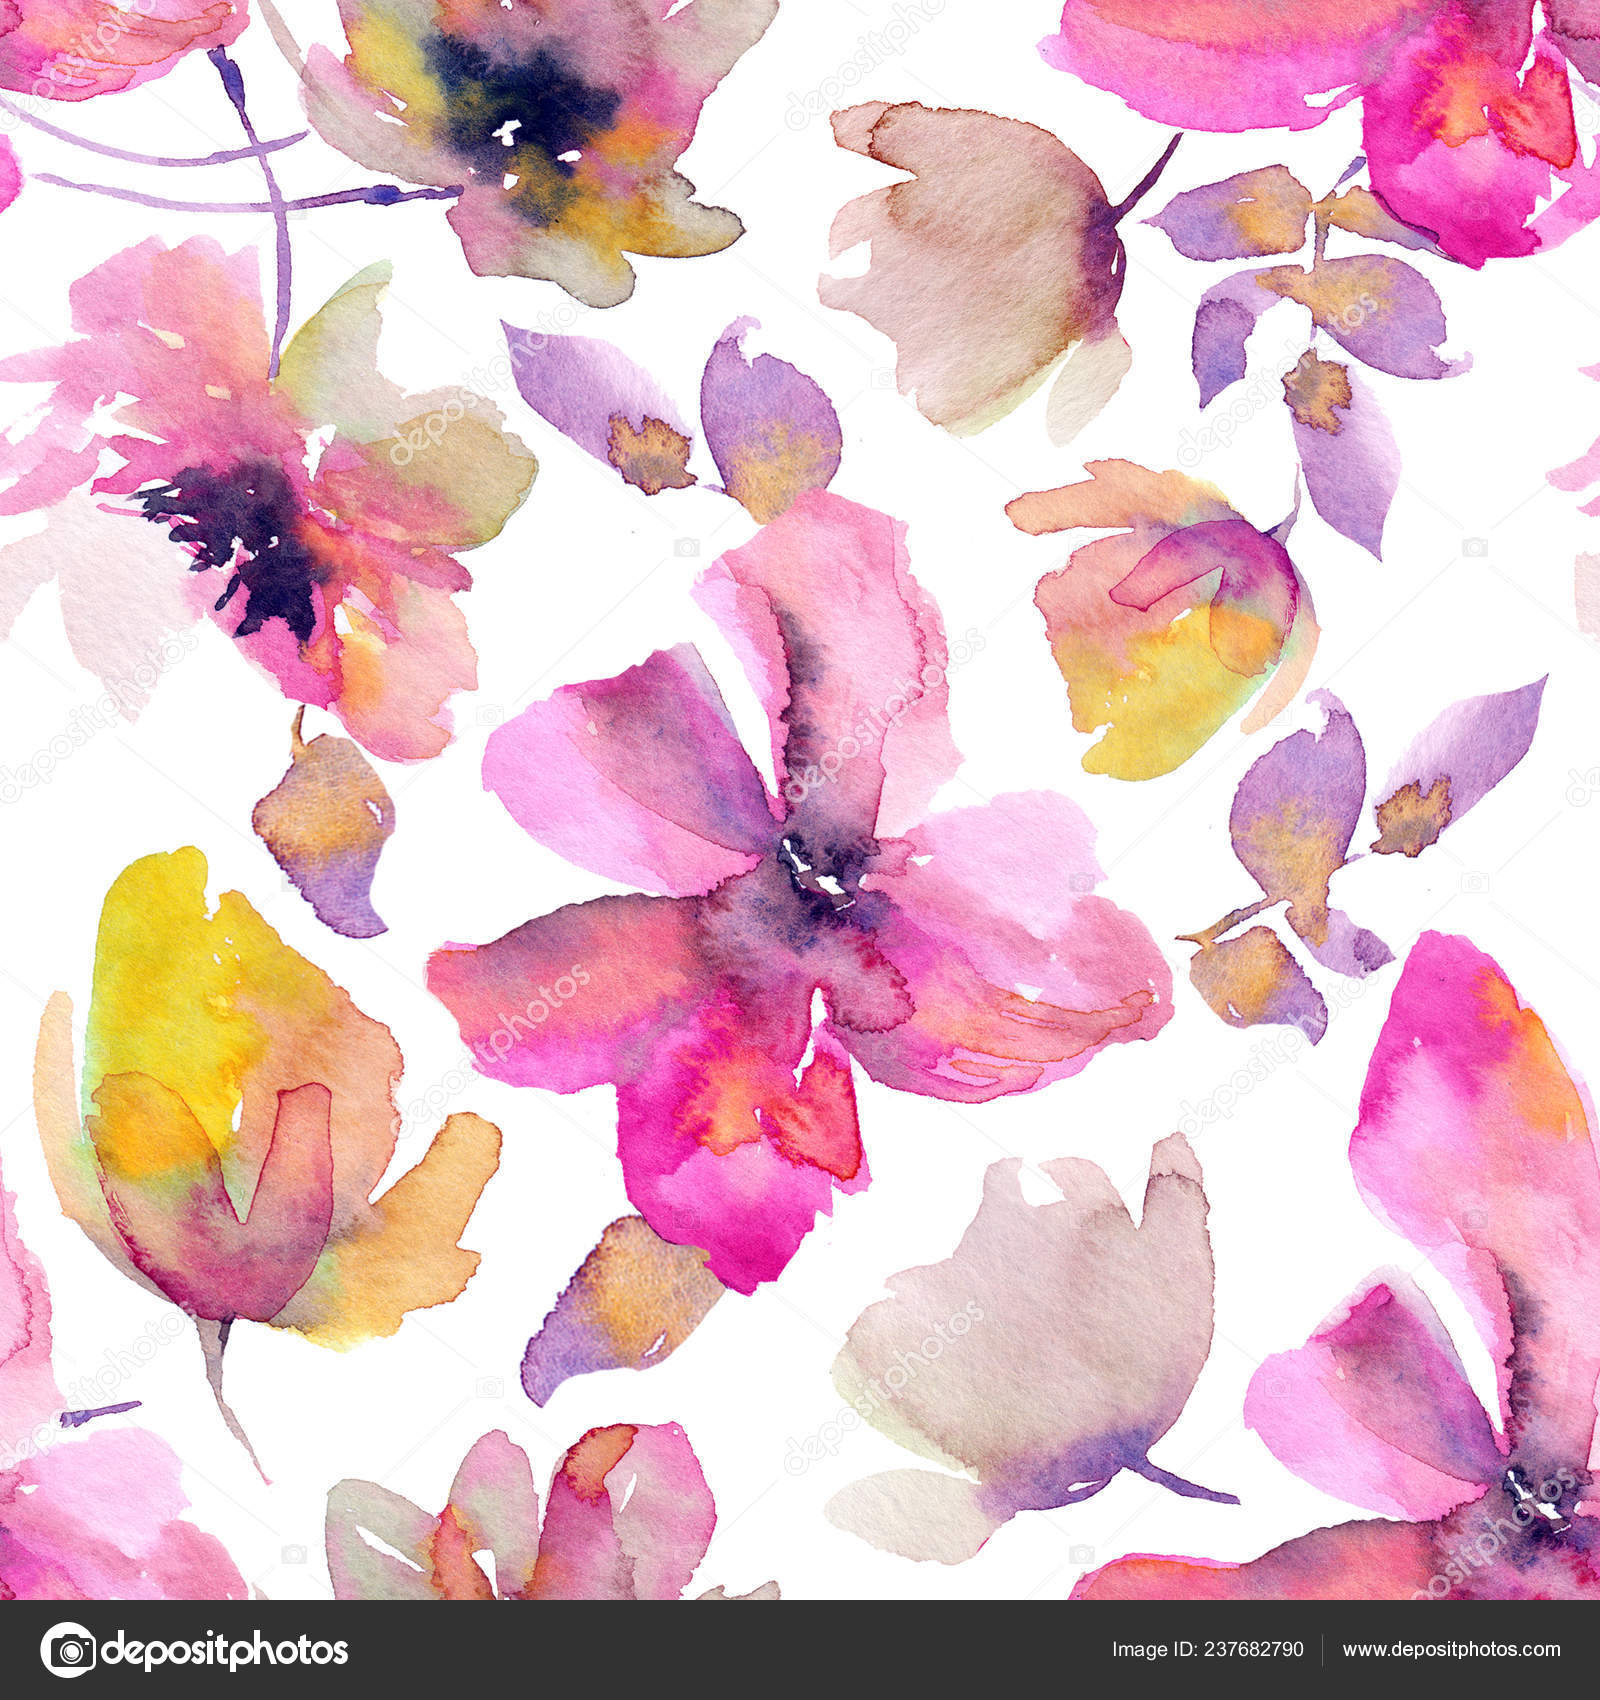 Hand Drawn Abstract Floral Wallpaper Stock Photo C Oaurea 237682790